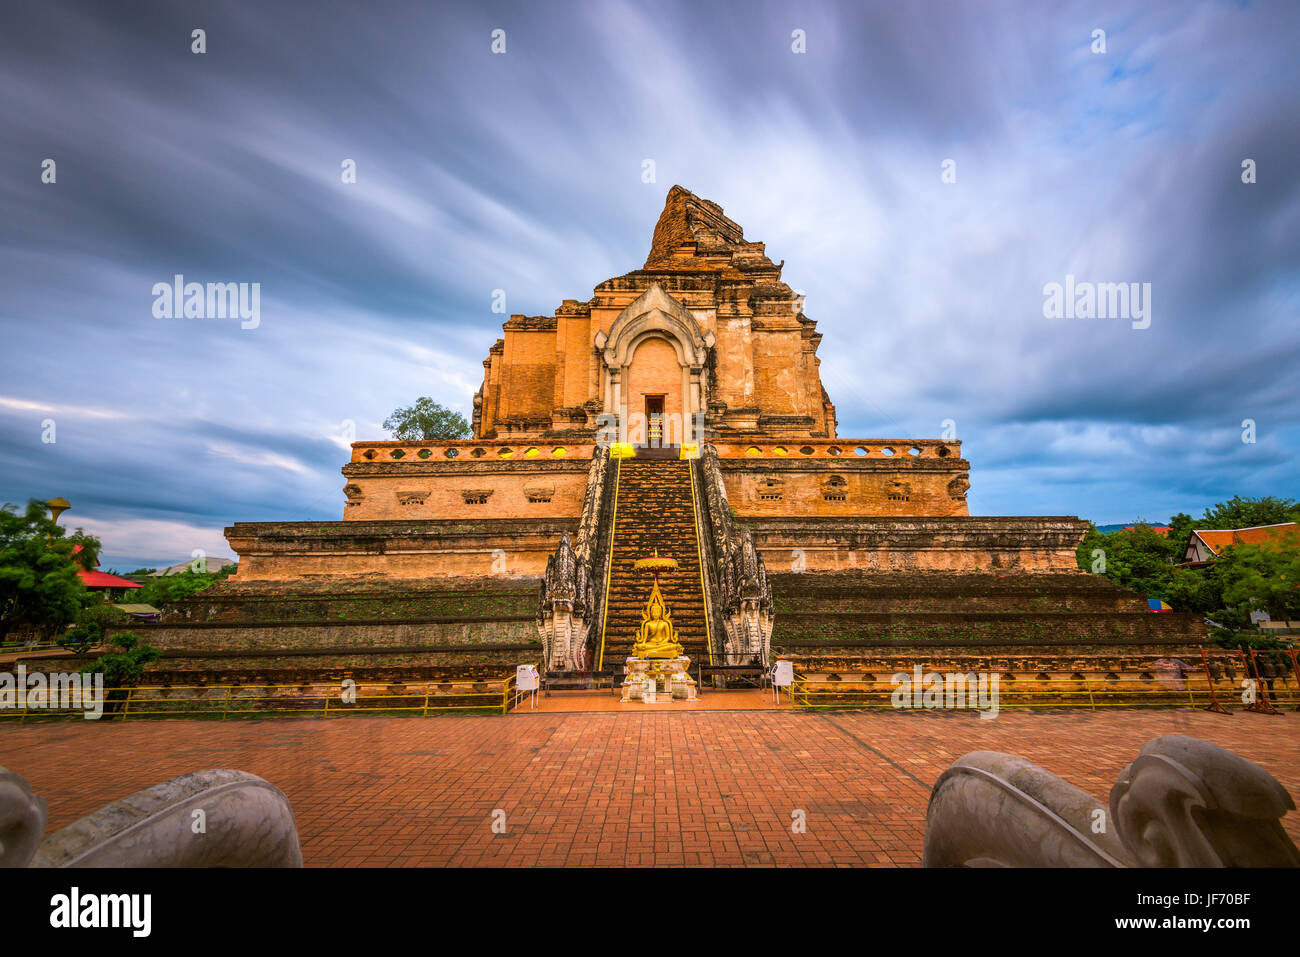 Wat Chedi Luang in Chiang Mai, Thailand. - Stock Image